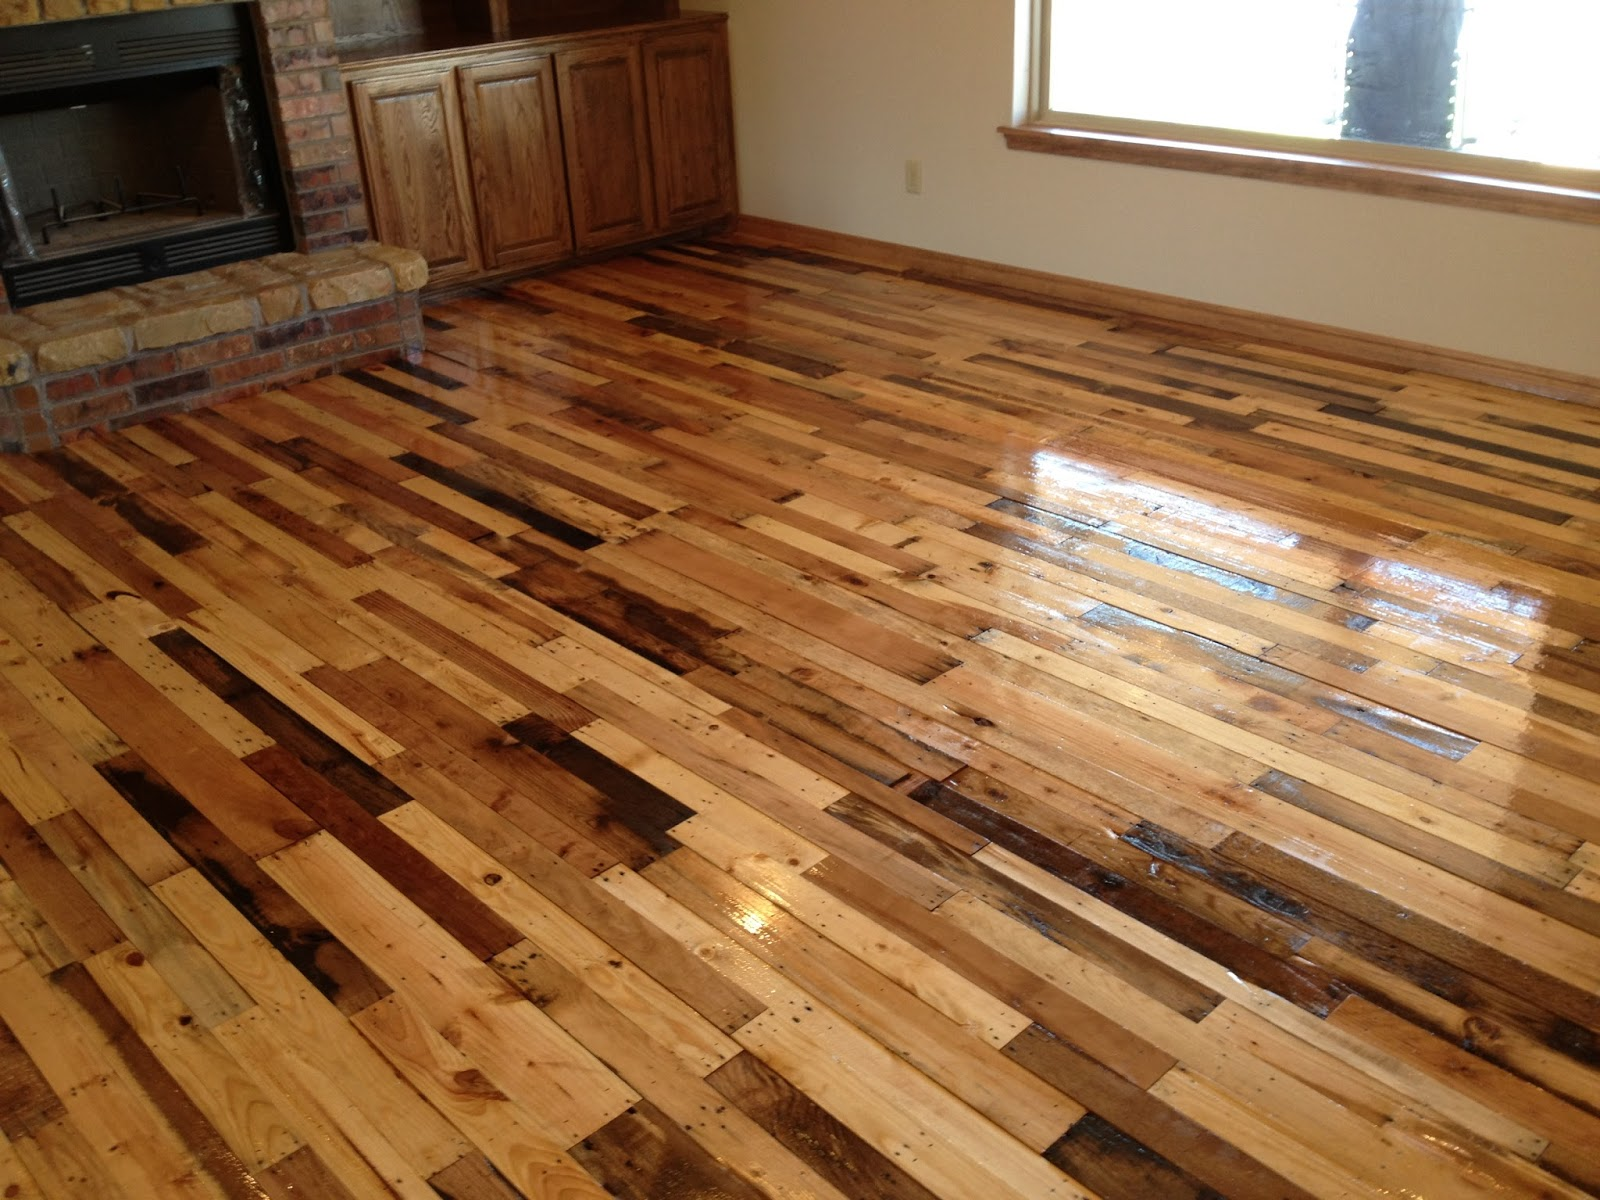 Diy hardwood floor flooring ideas home for Hardwood floor ideas pictures